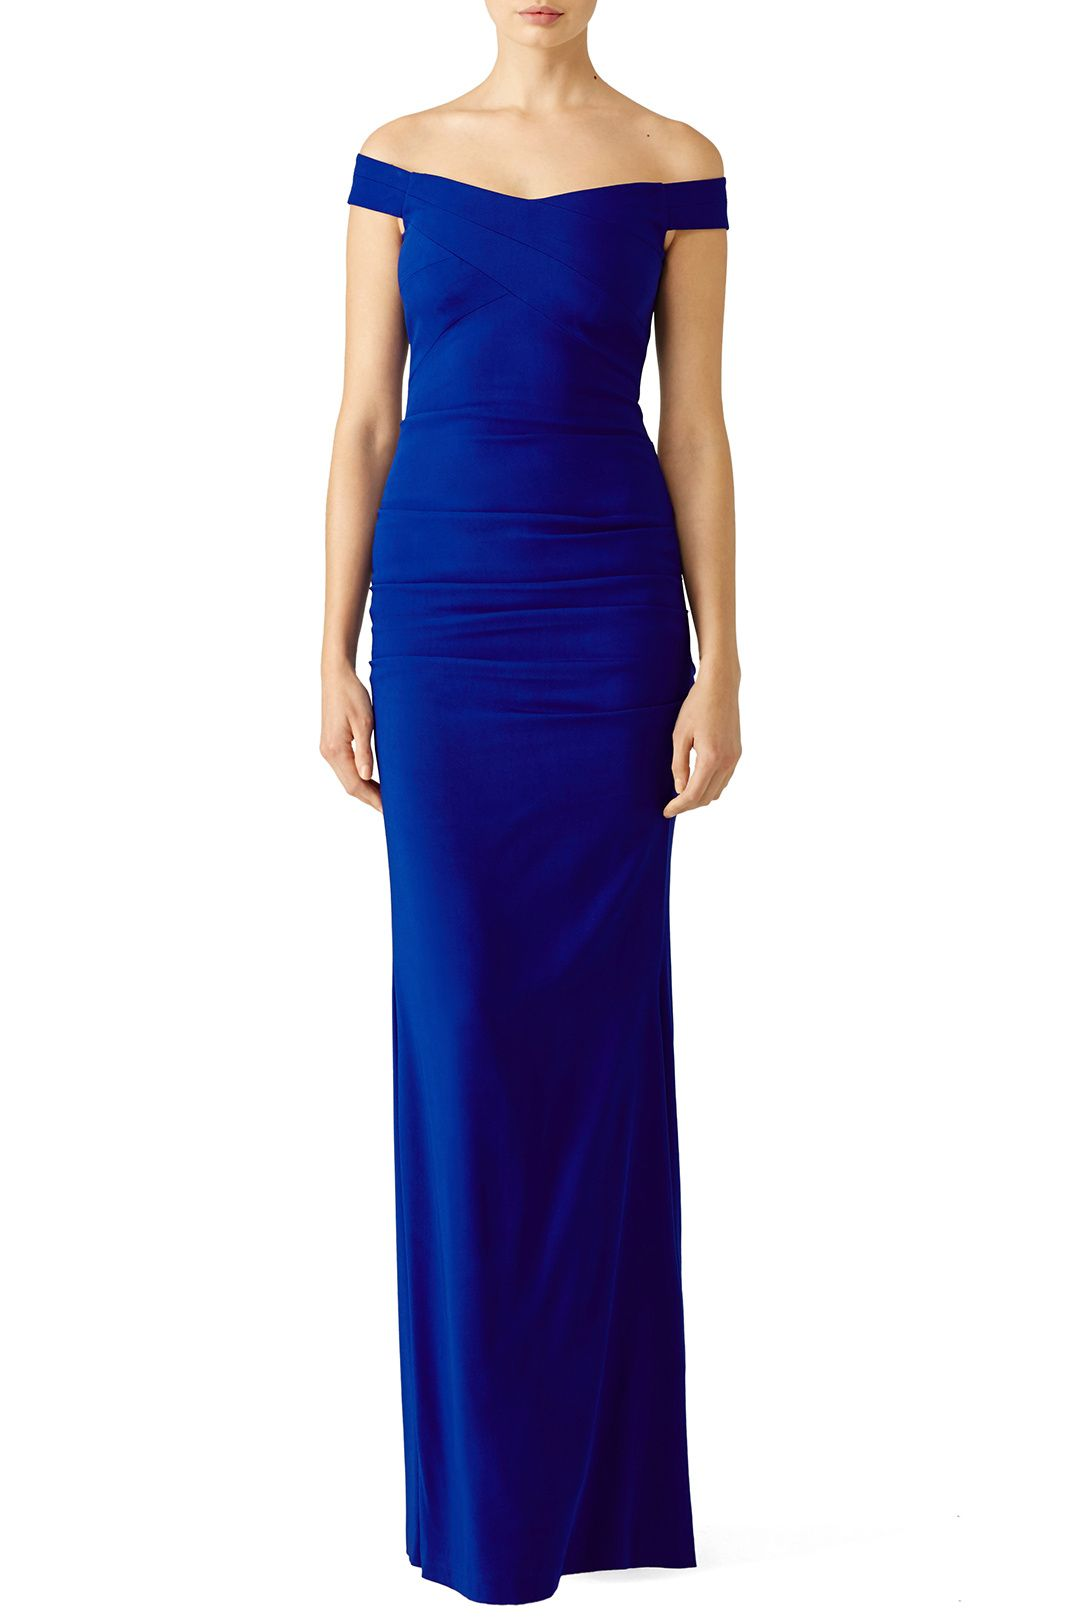 Blue Vive Gown | Nicole miller, Gowns and Royal blue